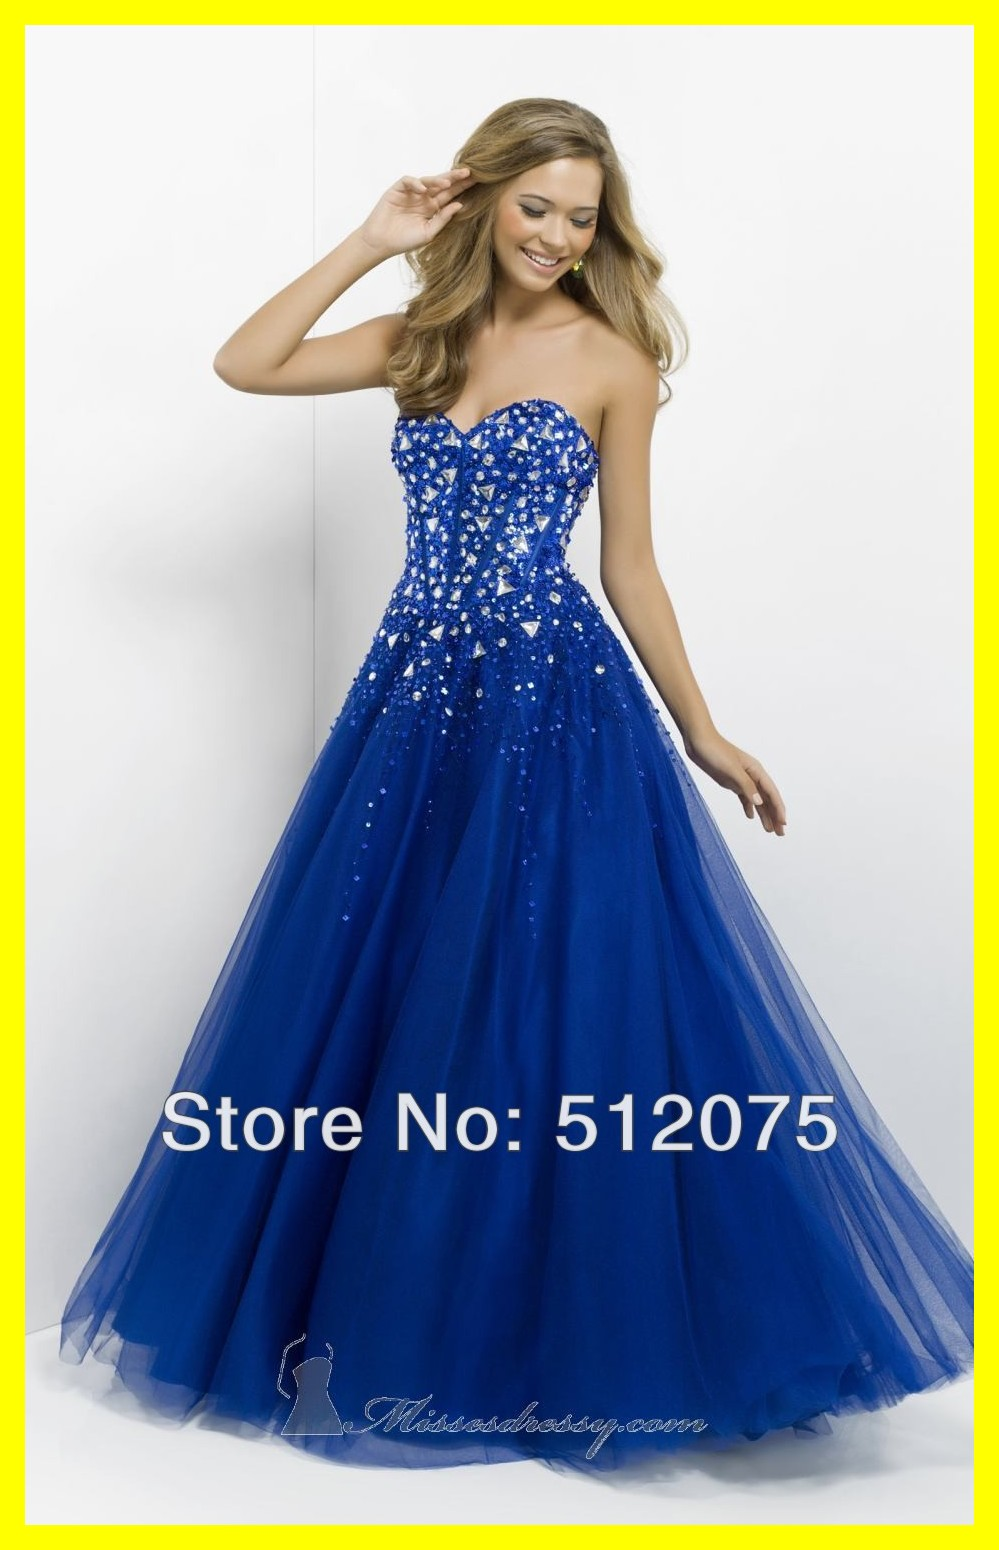 Cheap Prom Dress Shops In Charlotte Nc - Long Dresses Online